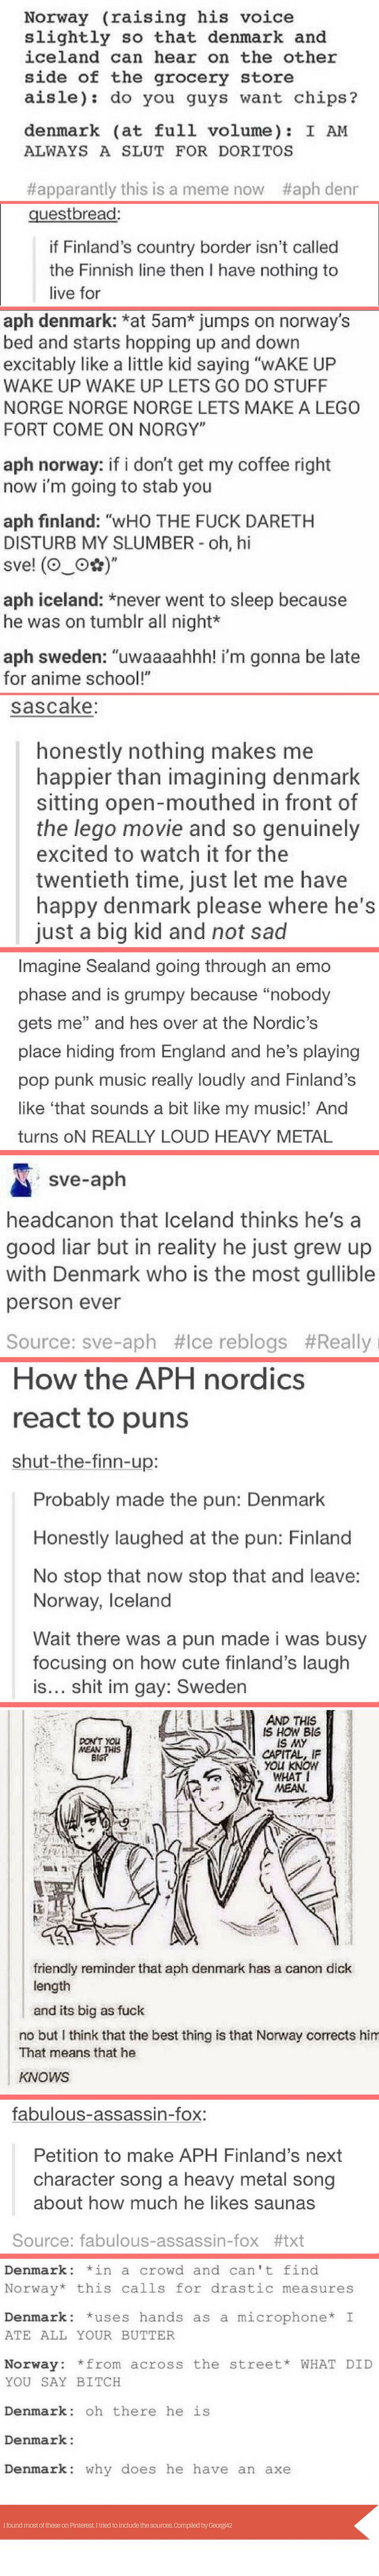 Random text posts I compiled about the nordics (I love them too much whoops...)